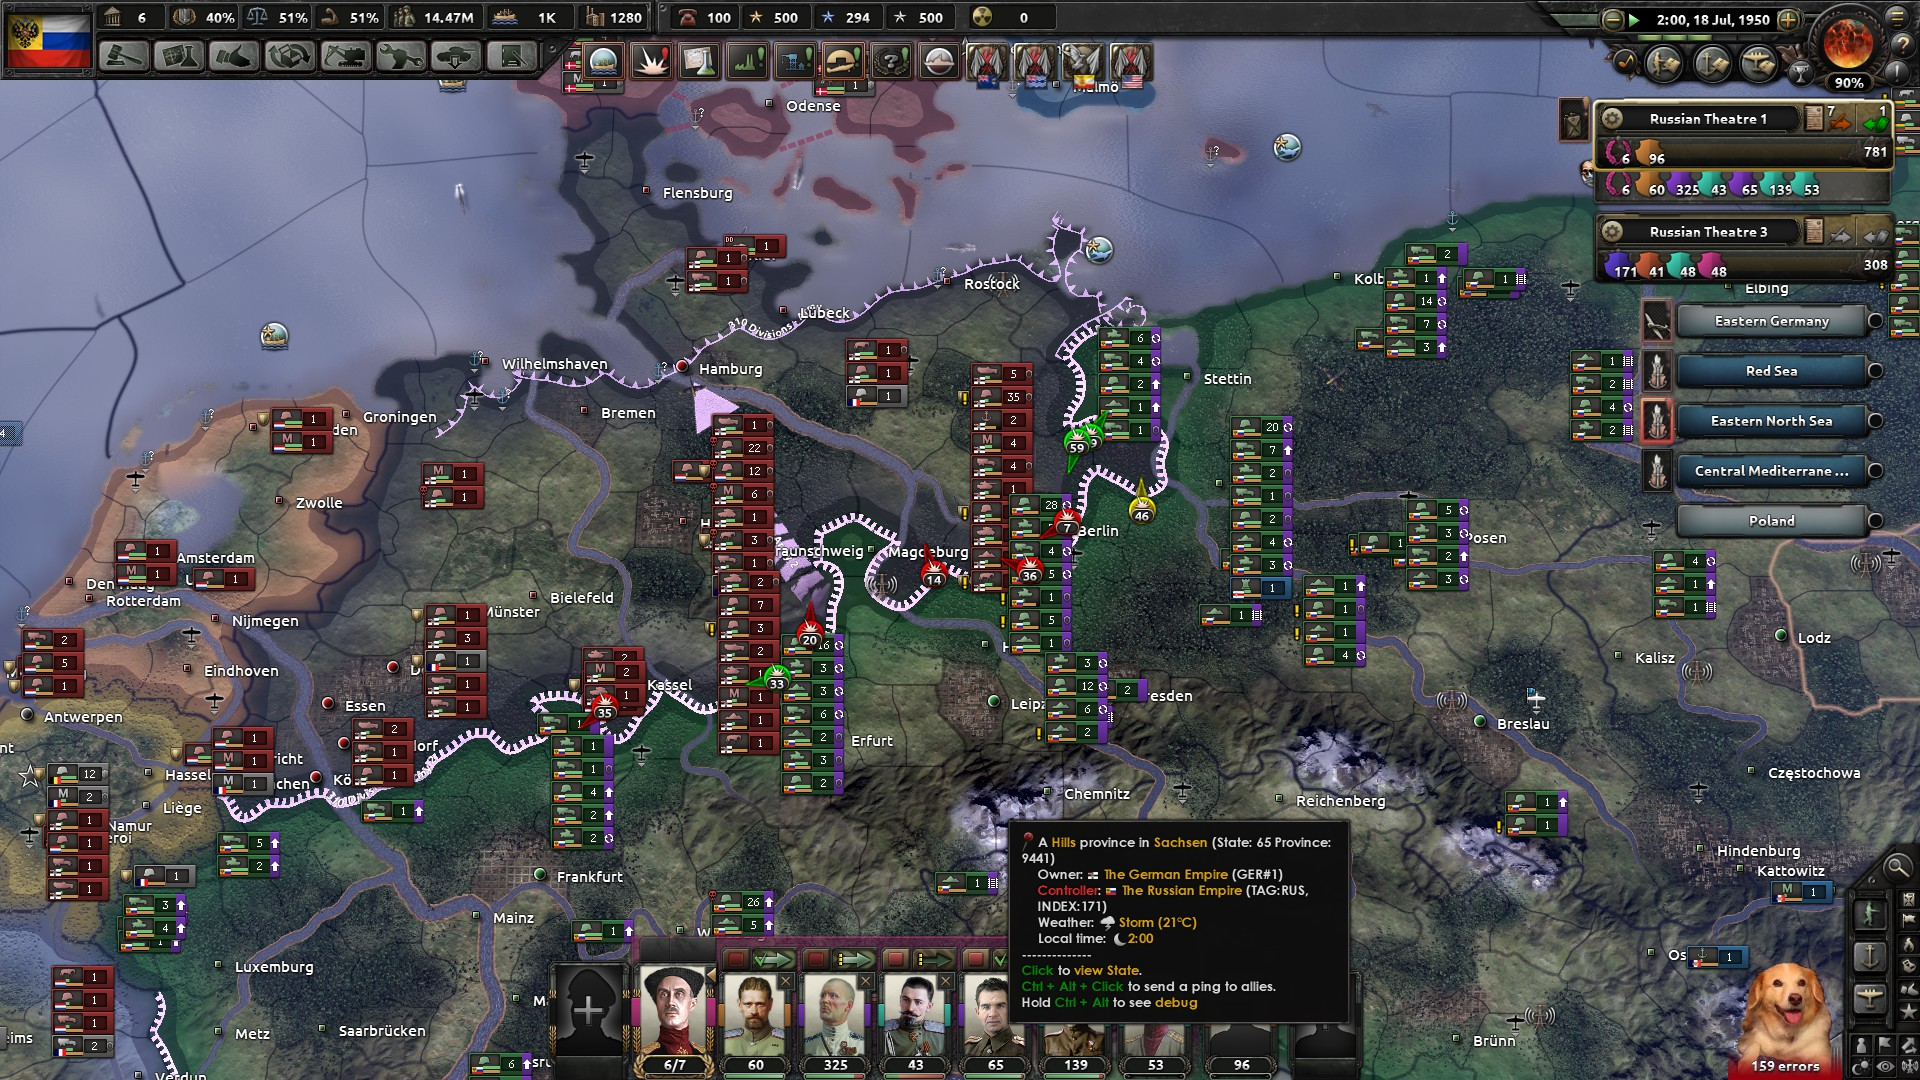 play as russia, i single-handedly defeat germany empire, but